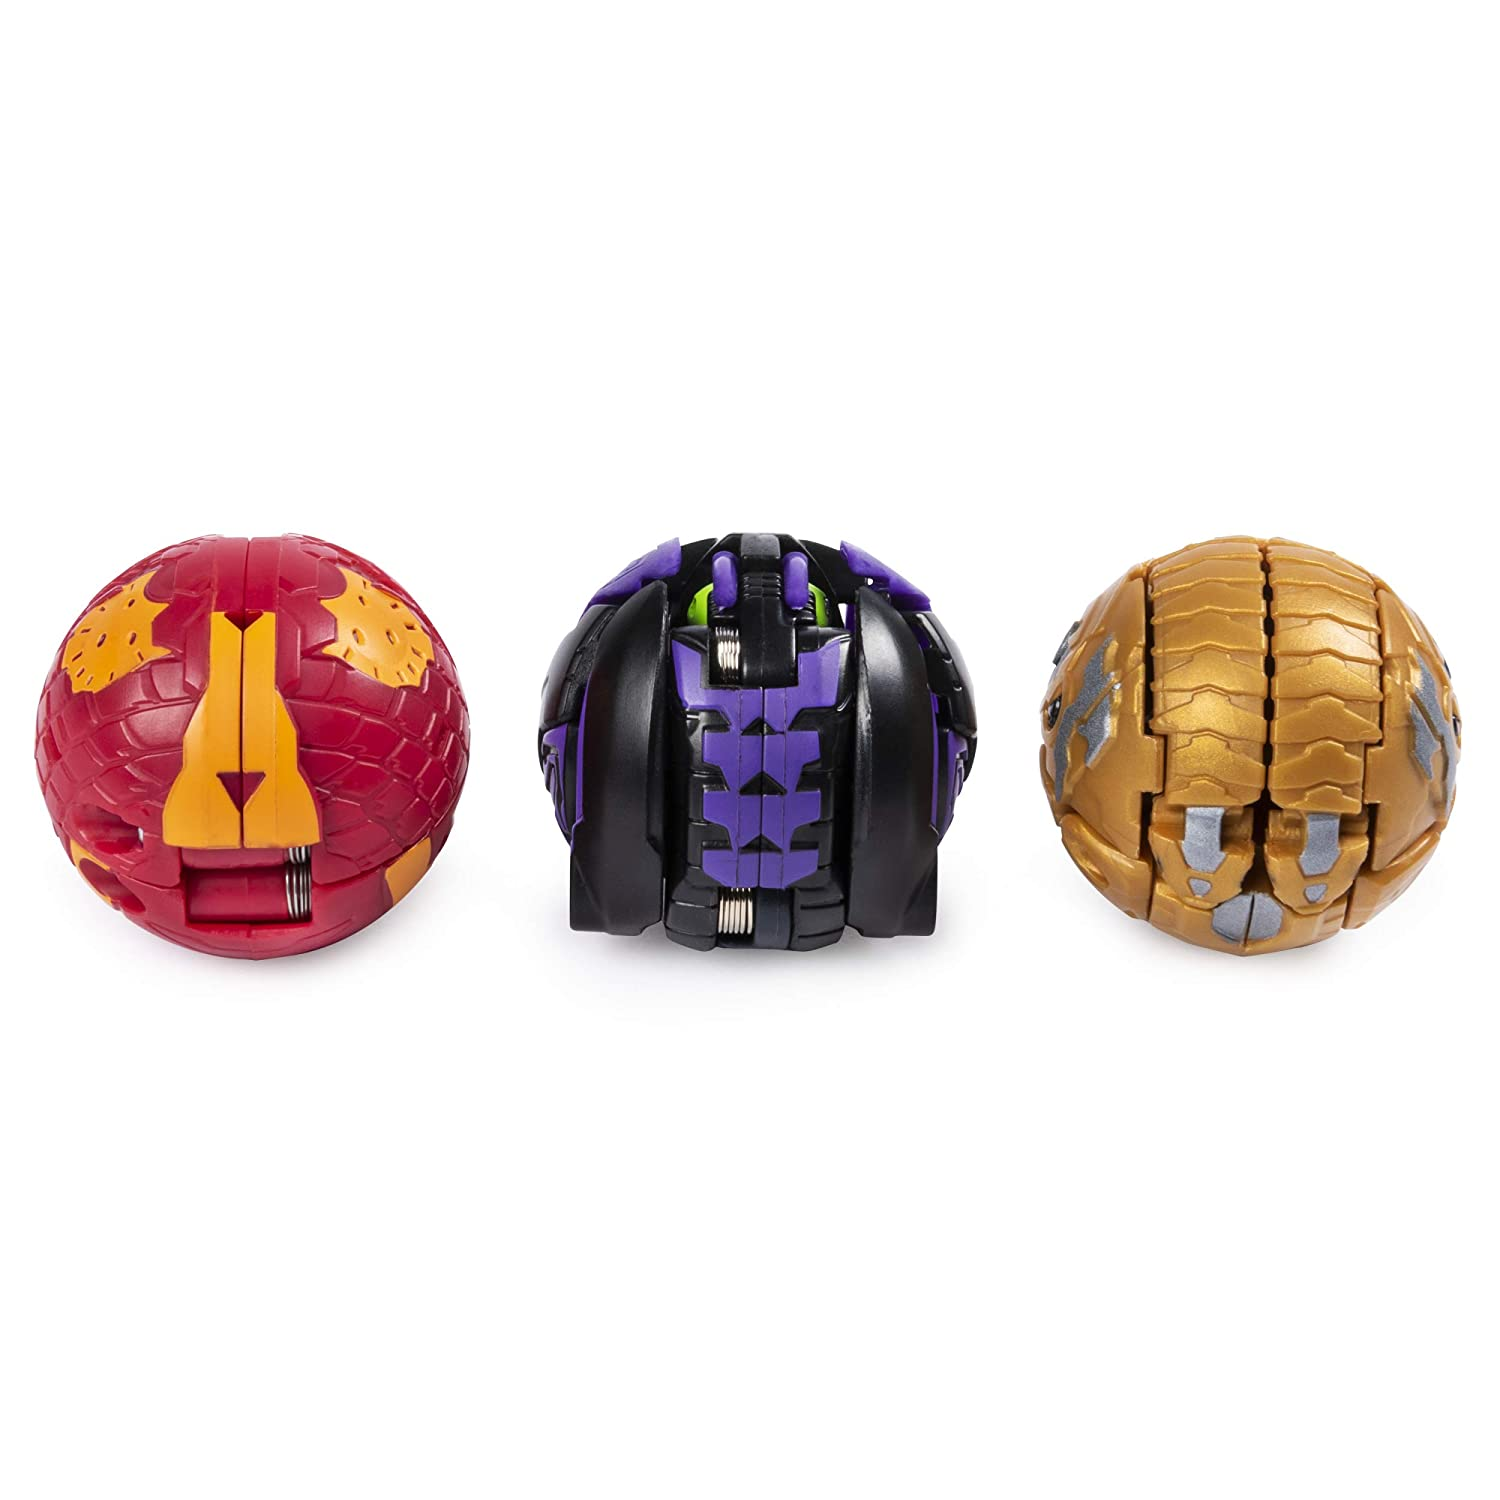 Bakugan Starter Pack 3-Pack for Ages 6 and Up Collectible Transforming Creatures Maxotaur